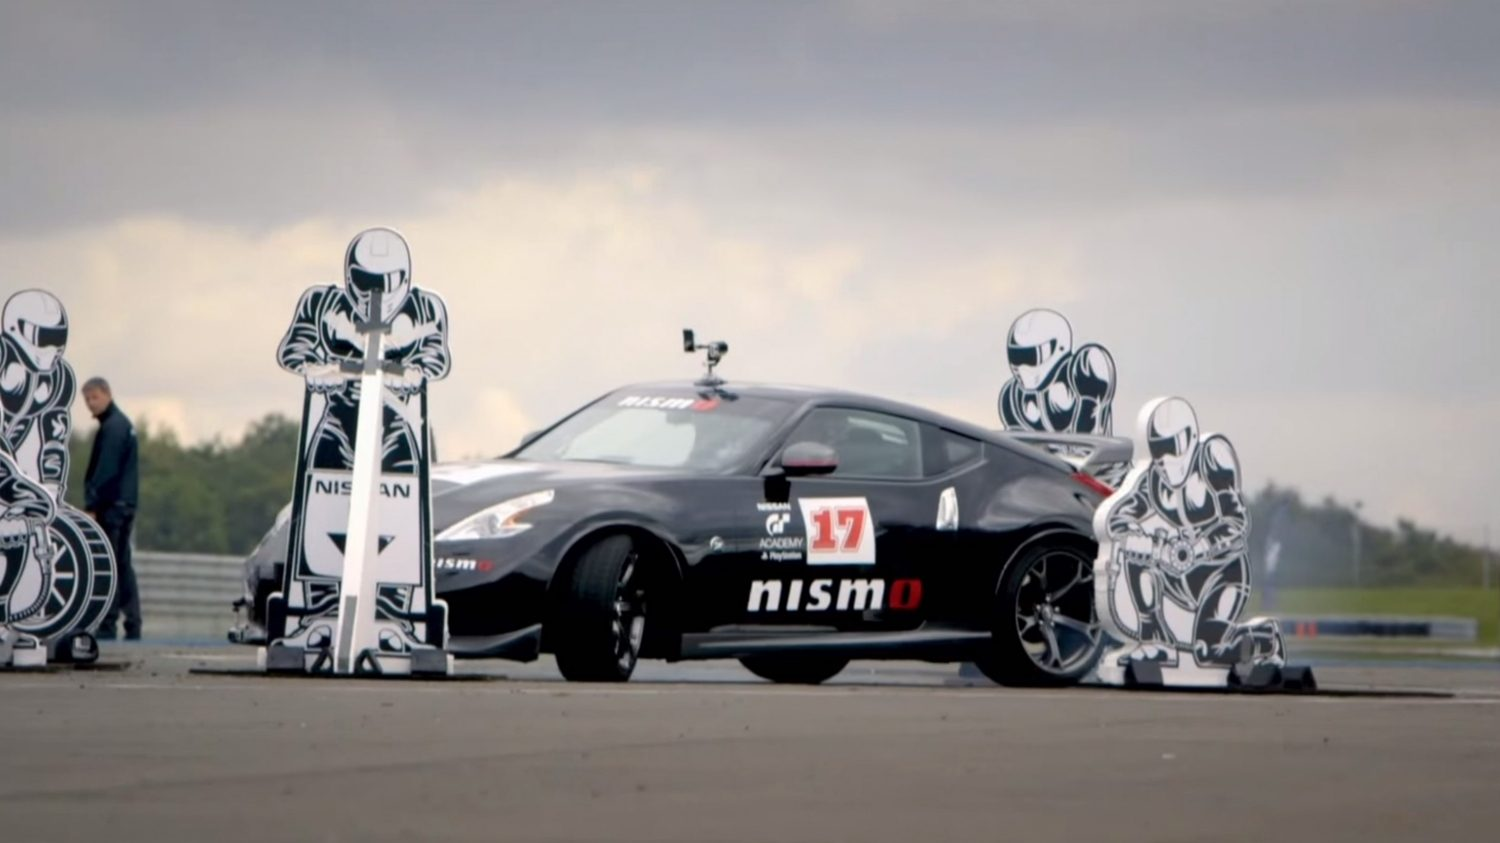 GT Academy, video. Temporada 4, episodio 5. Punto crítico.